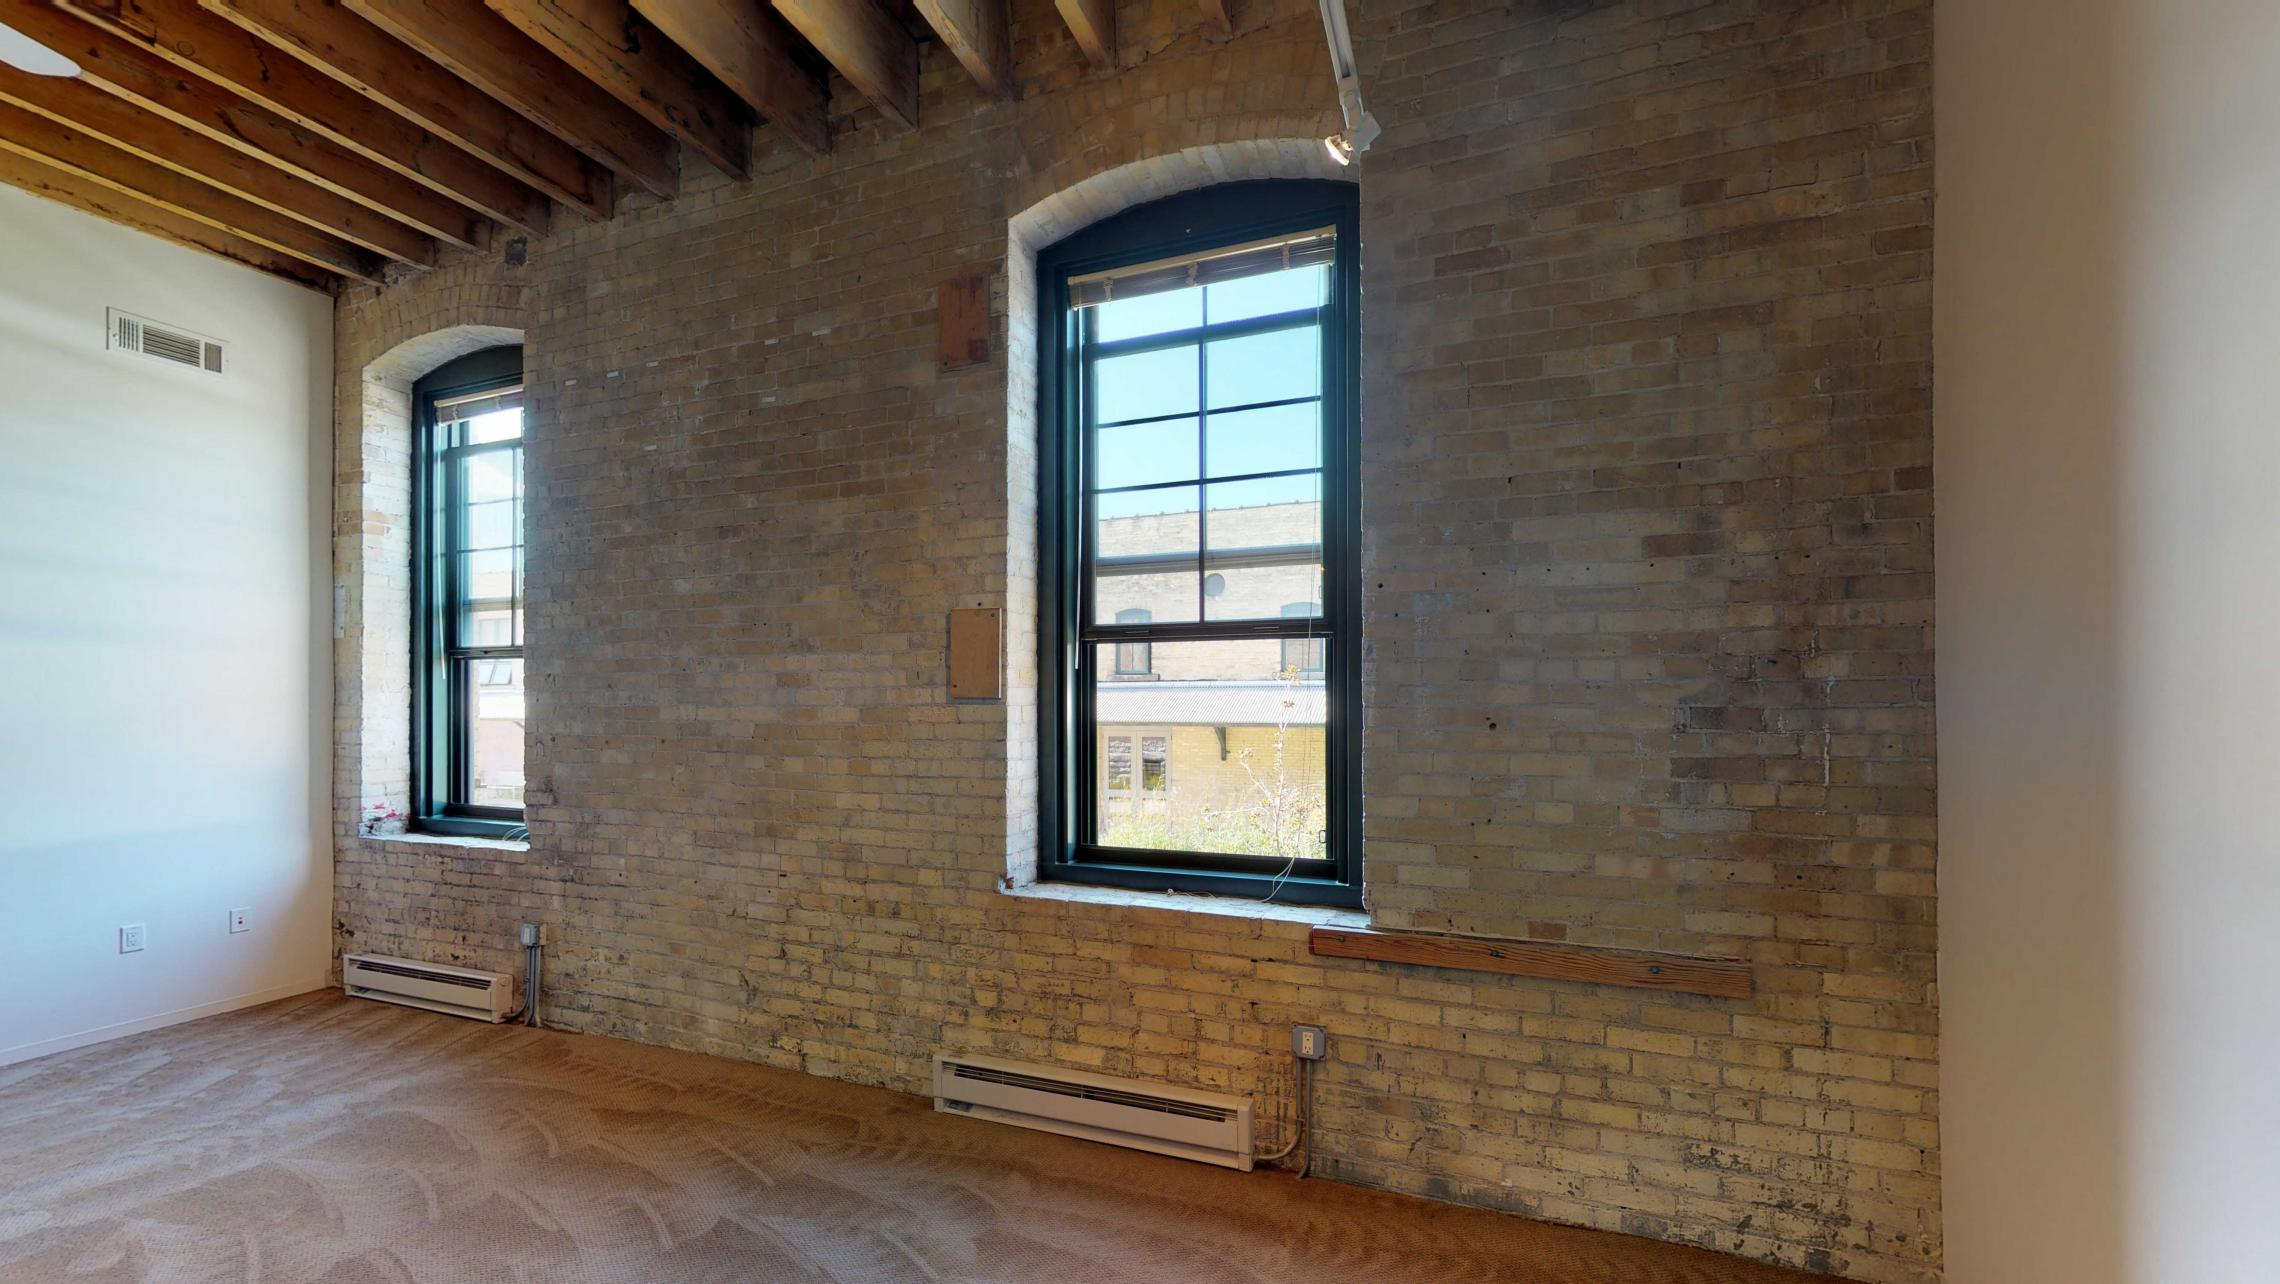 Tobacco-Lofts-Apartment-E210-exposed-brick-one-bedroom-historic-downtown-yards-Madison